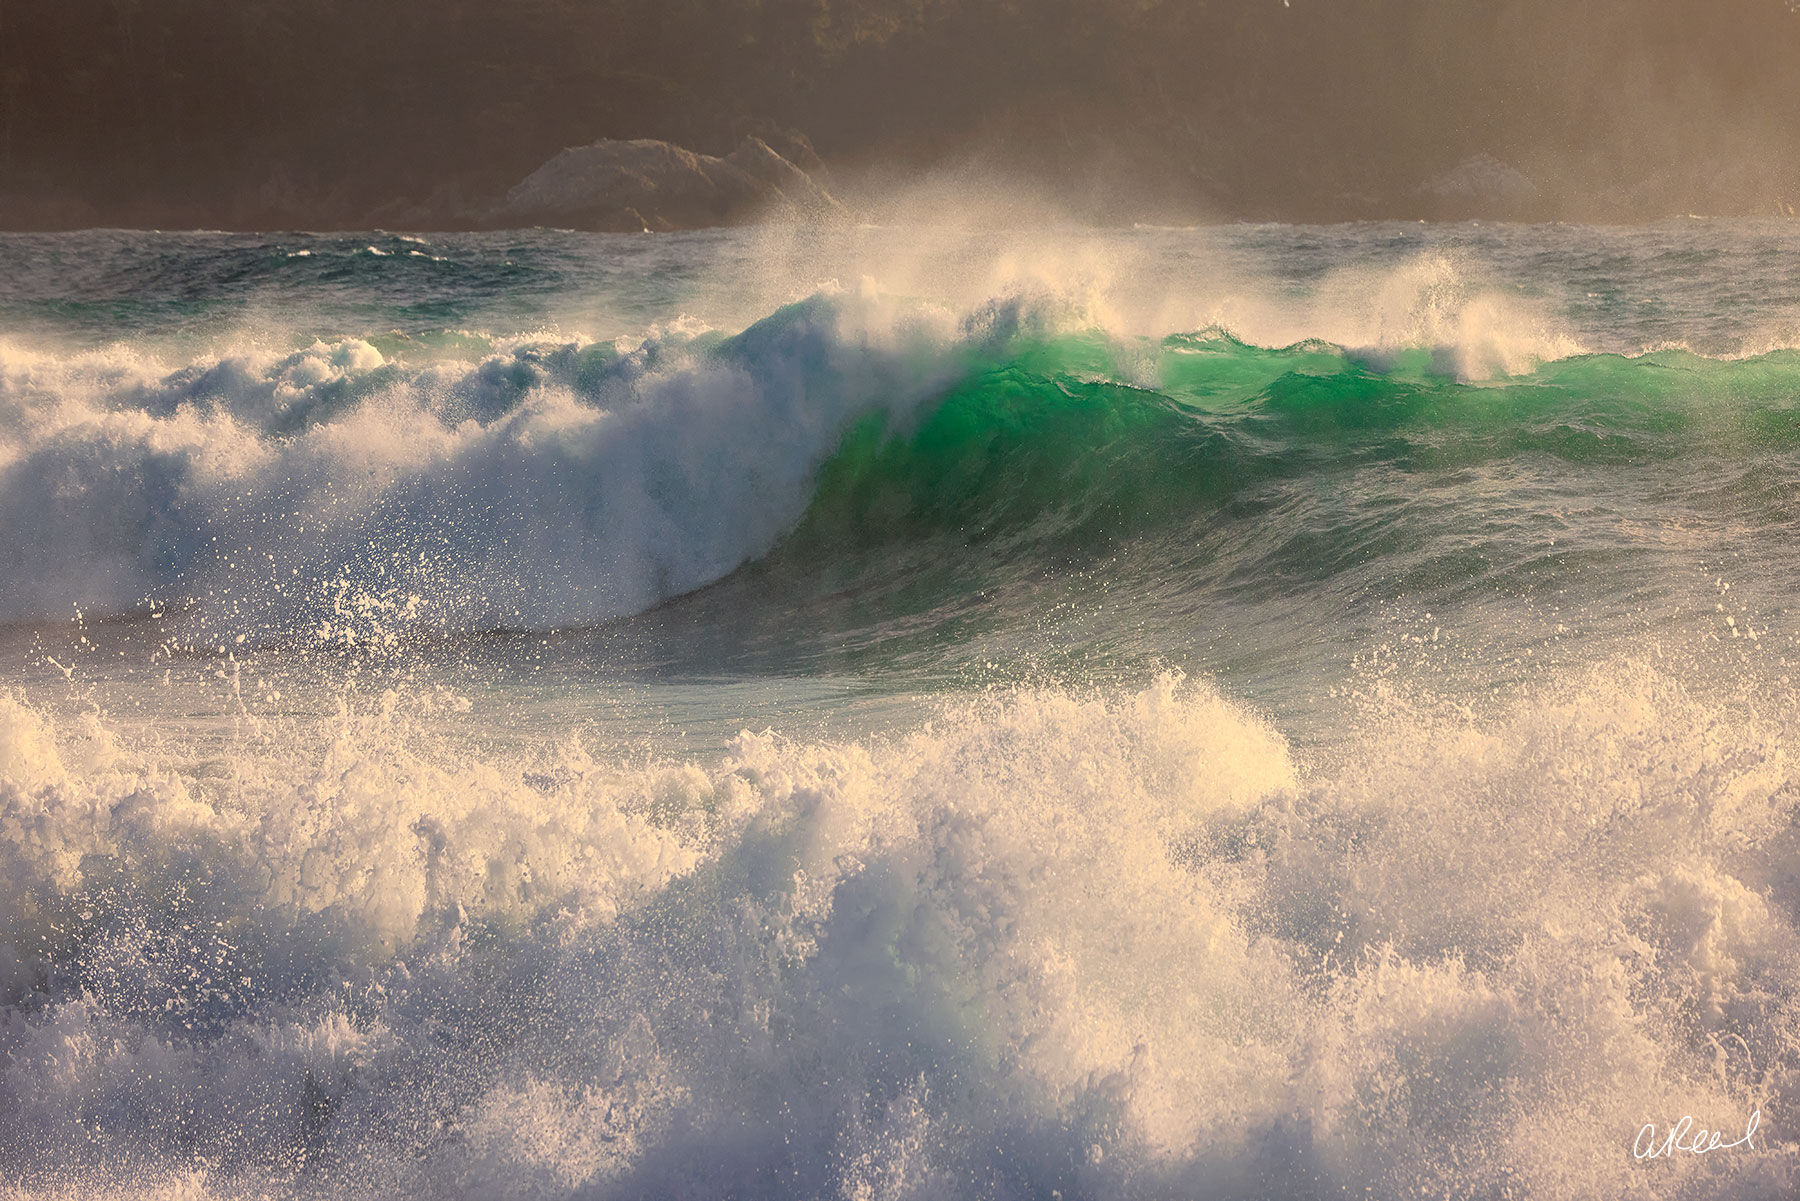 A crashing emerald wave with warm highlights in Pebble Beach, California titled Emerald Crush by photographer Aaron Reed.